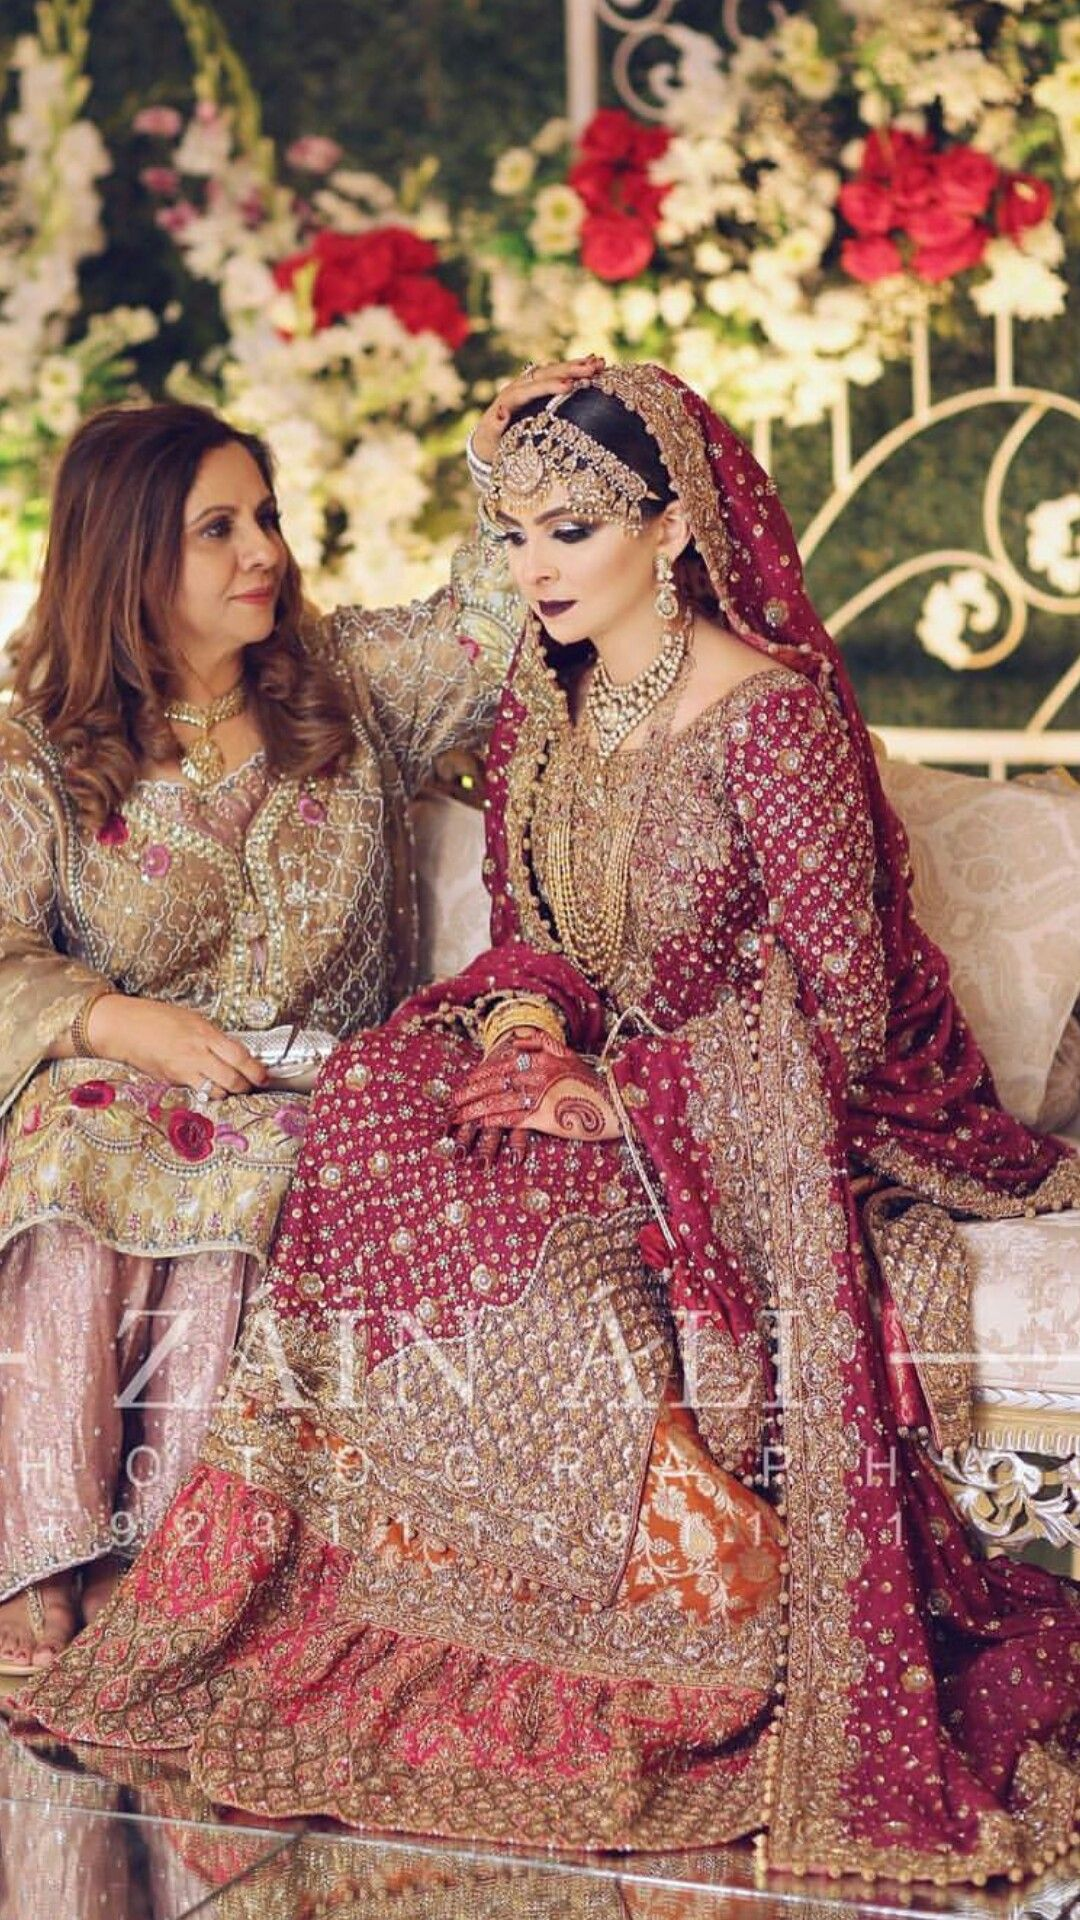 Clothes Only Pakistani Bridal Wear Indian Bride Outfits Pakistani Wedding Dresses